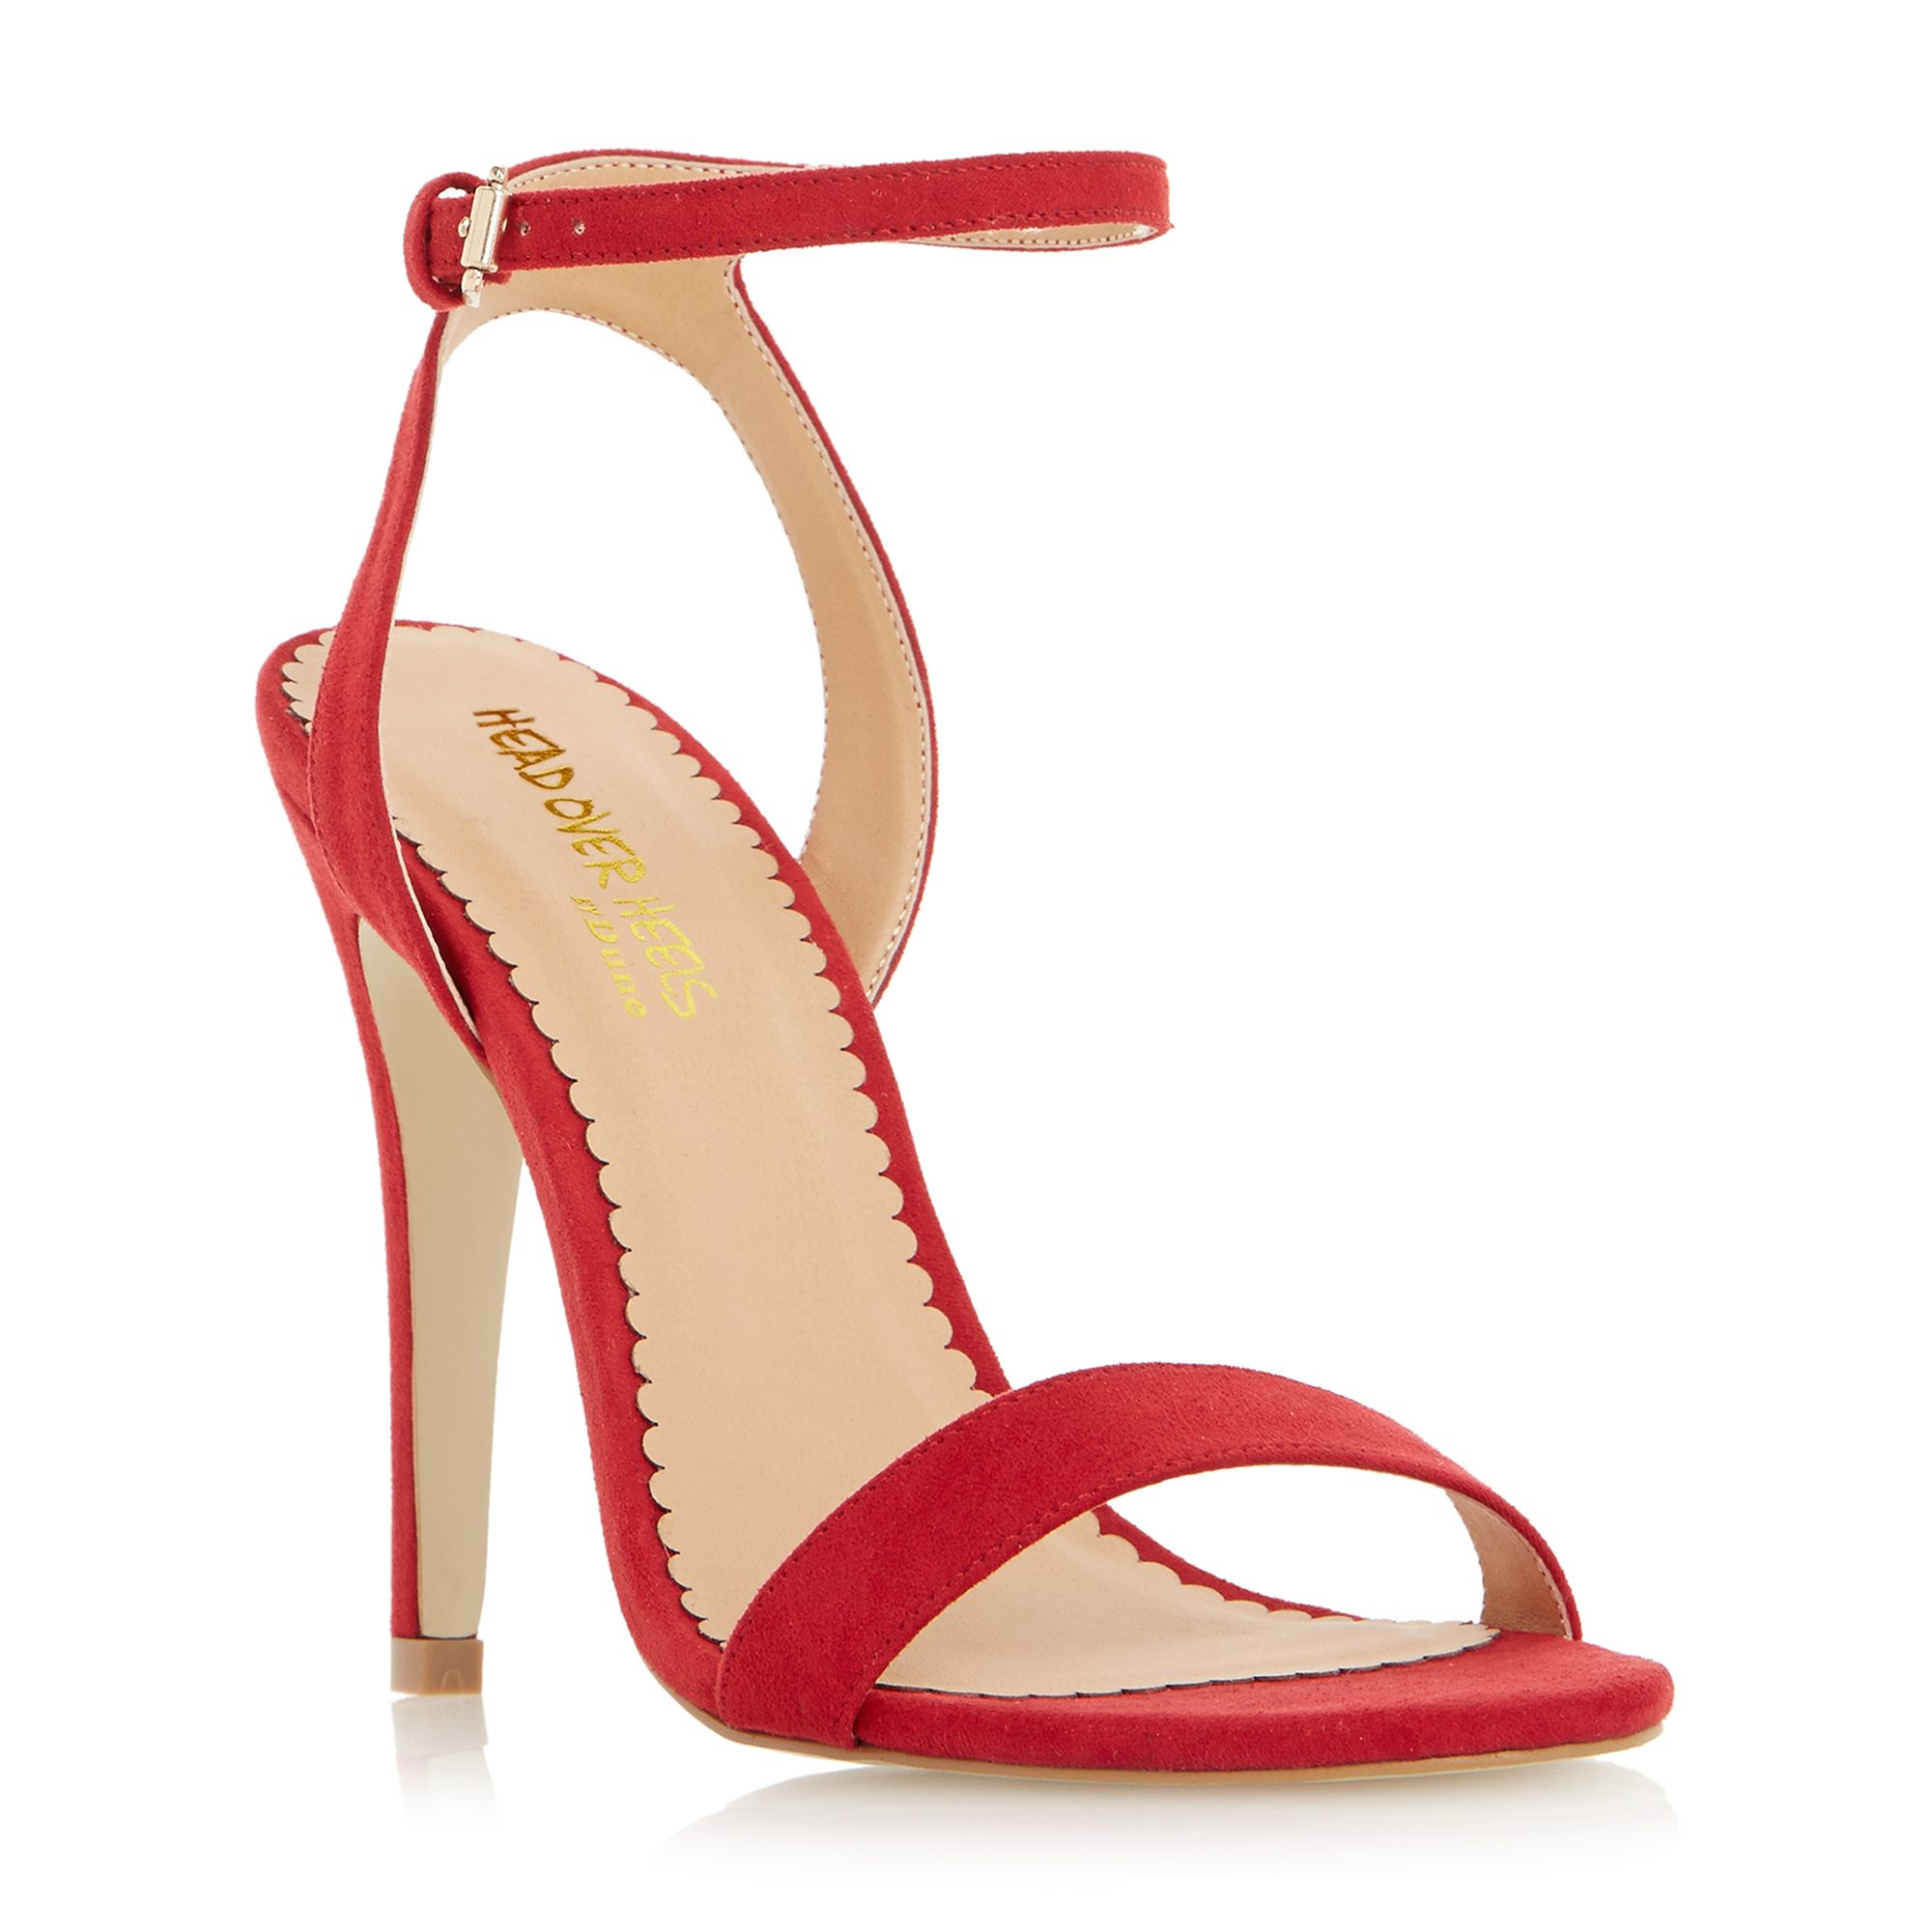 Red Strappy High Heel Sandals IgD5JHHq